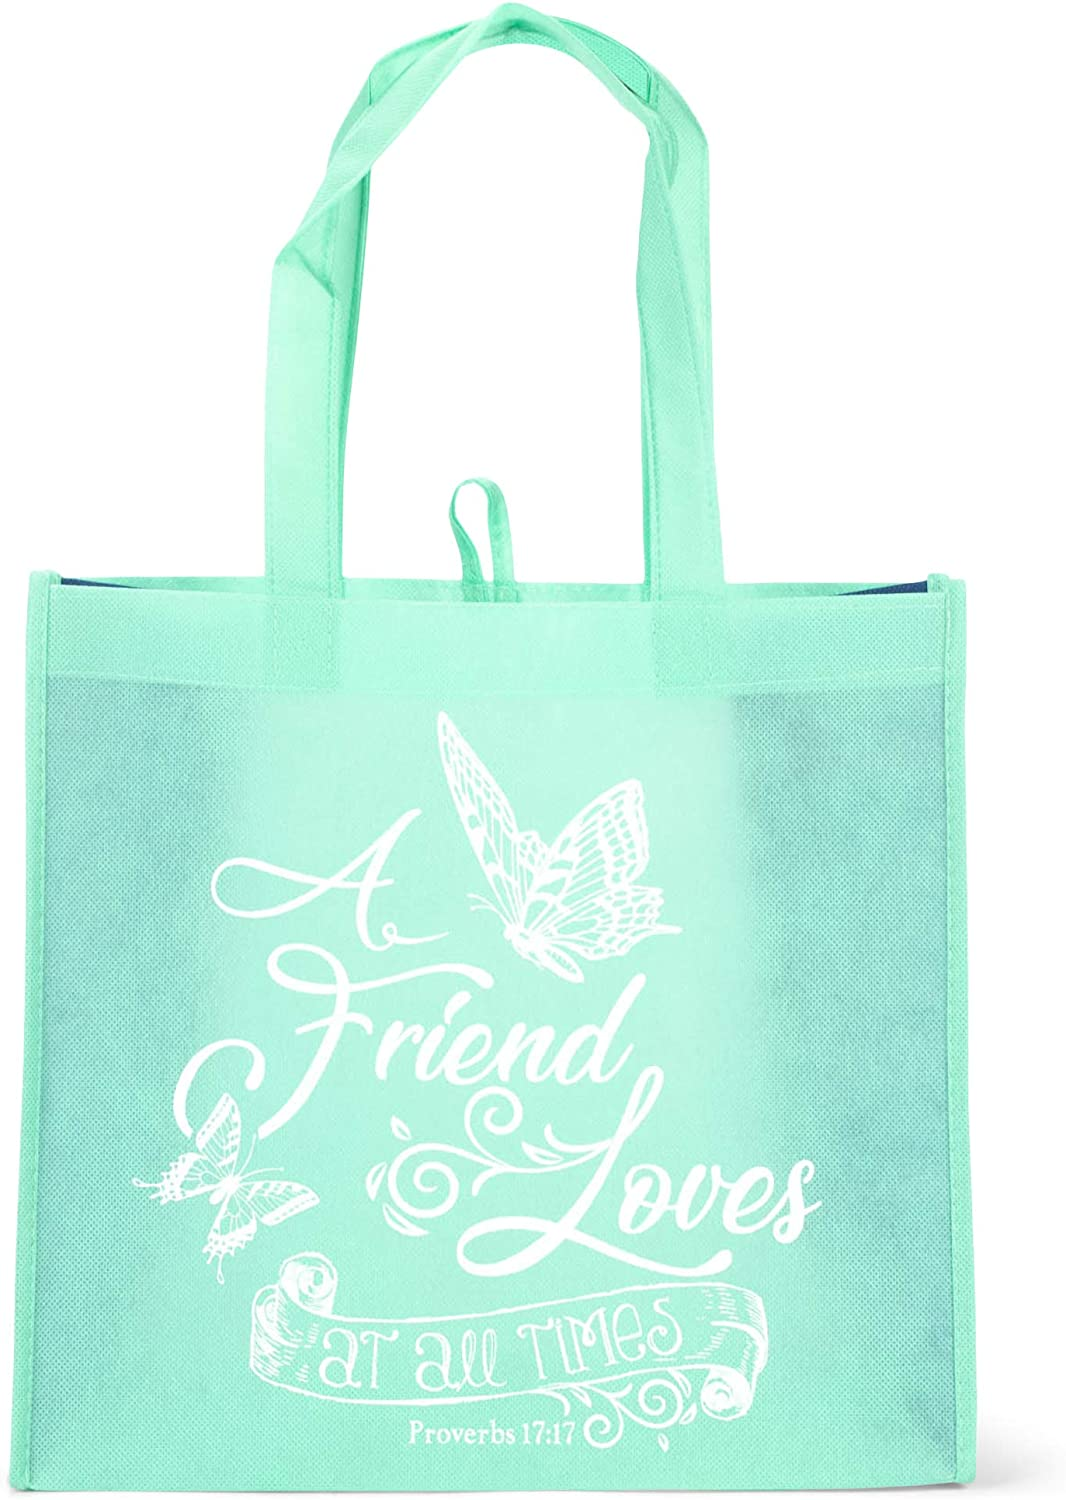 Friend Loves At All Times Sky Blue 12.5 x 12 Canvas Fabric Eco Tote Handbag